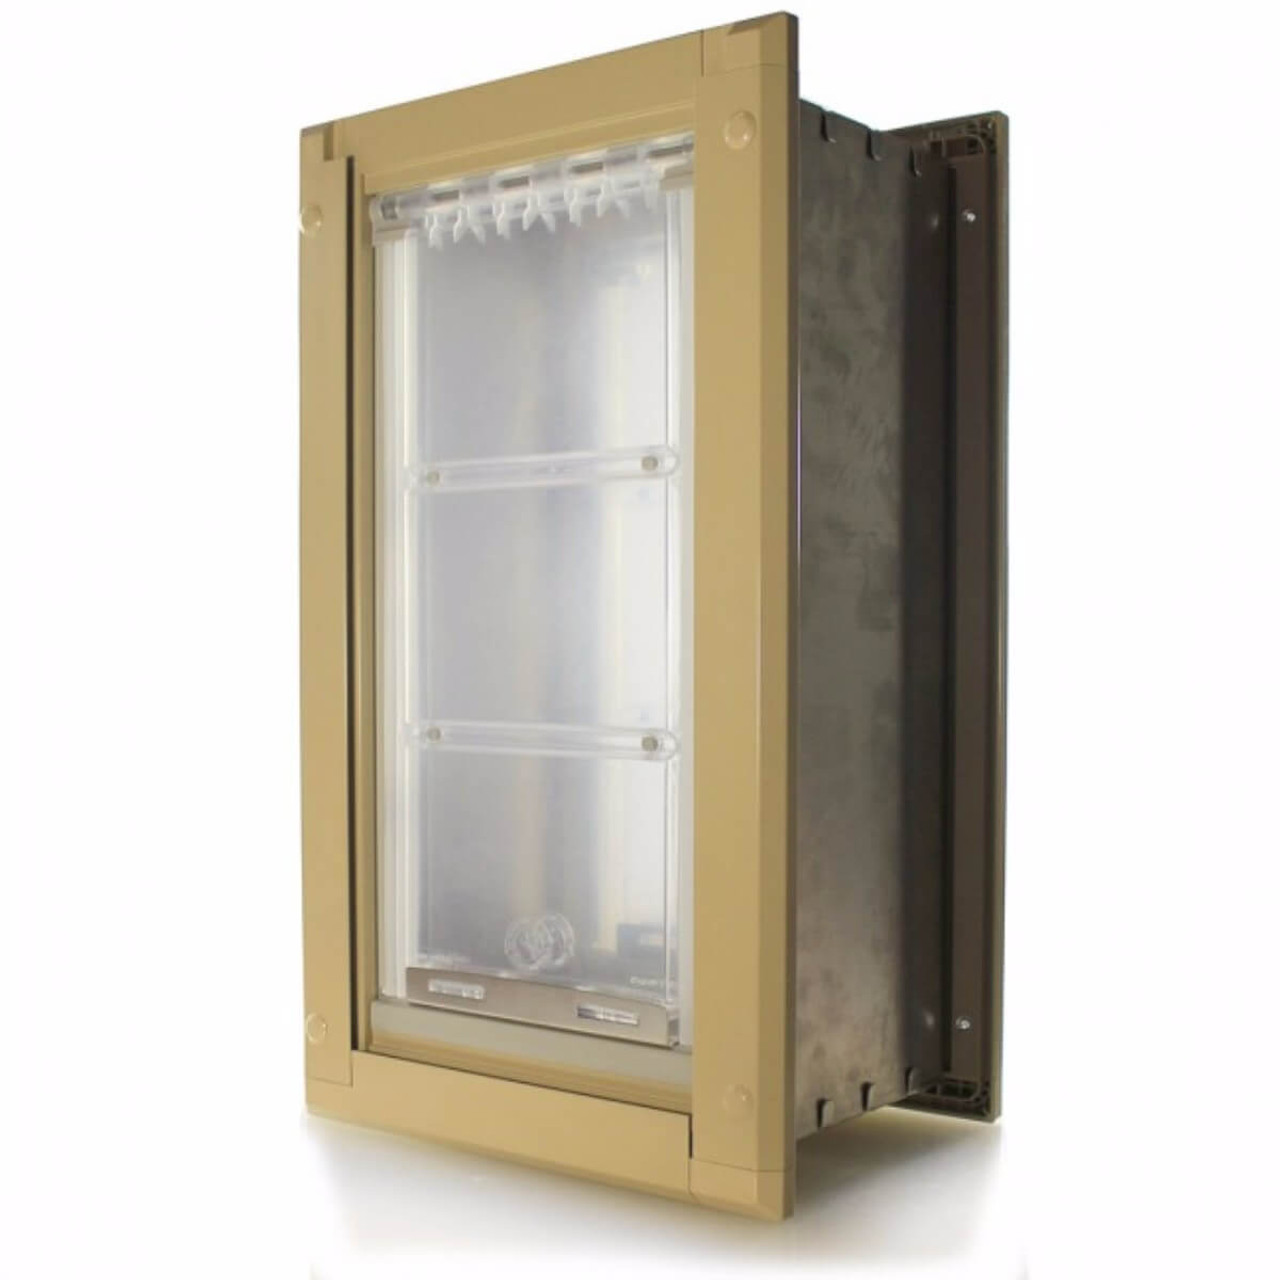 Endura Flap pet doors have a cut to fit tunnel that works for walls with 2x4 or 2x6 studs